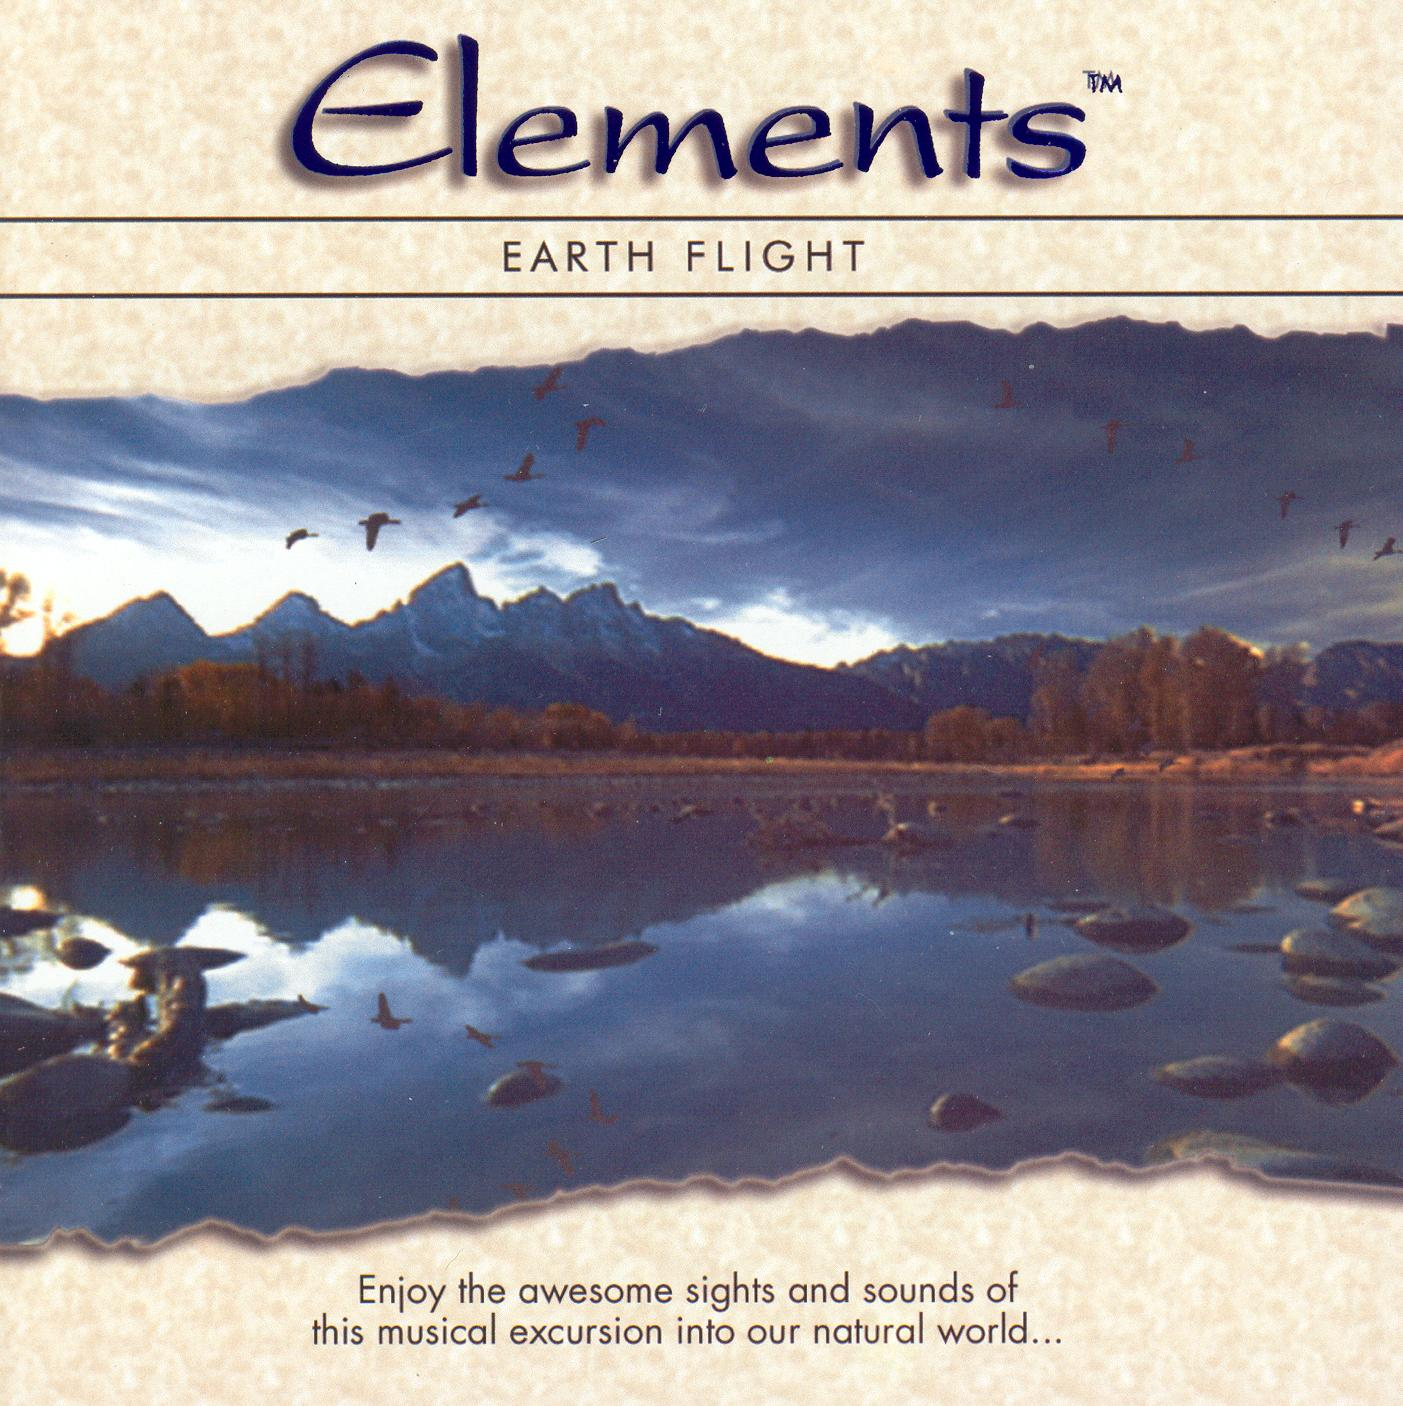 Elements: Earth Flight